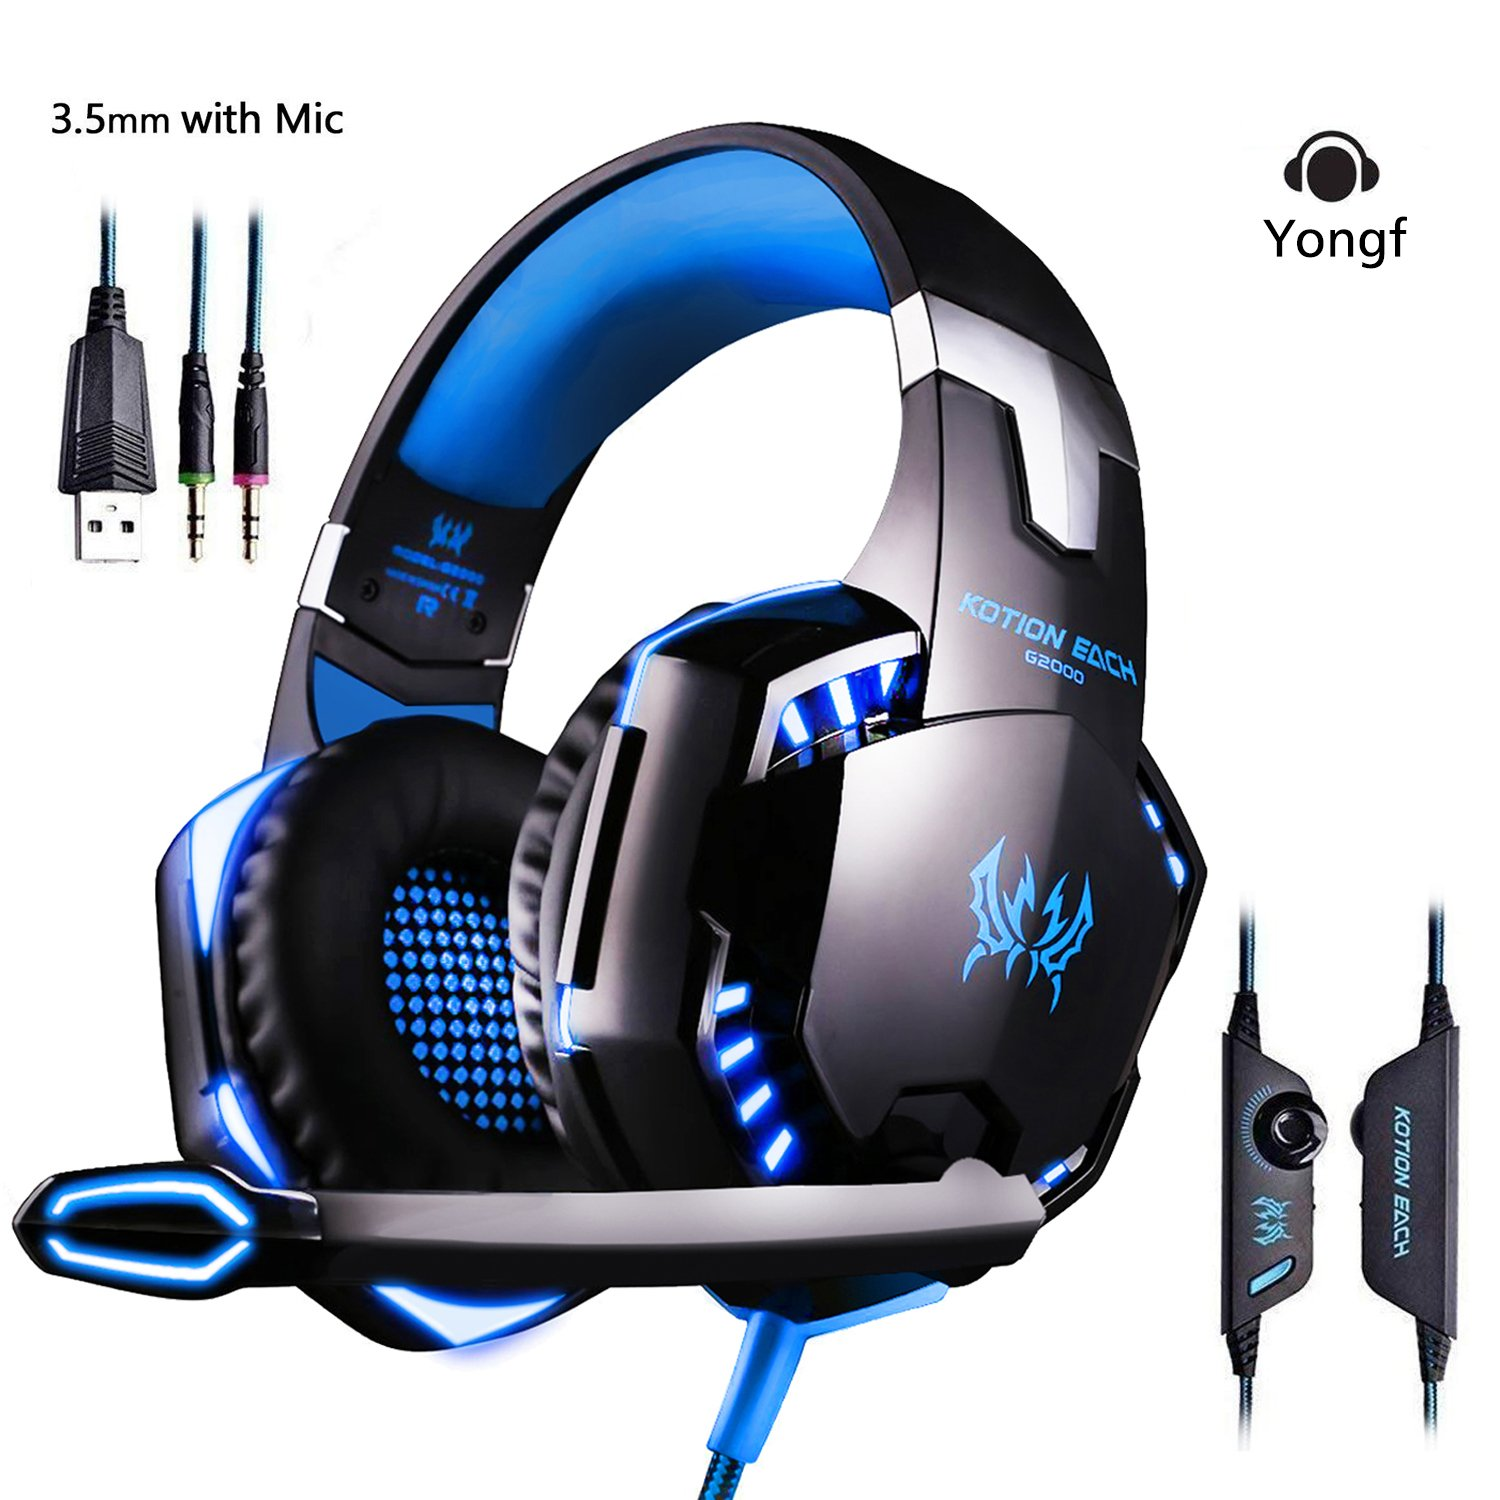 Stereo Gaming Headset Yongf G2000 for PS4 XBOX ONE Bass Over Ear Headphones with microphone LED Lights and Volume Control for PC, Mac, Laptop, iPad, Computer, Mobile phones – Blue (G2000 Blue)